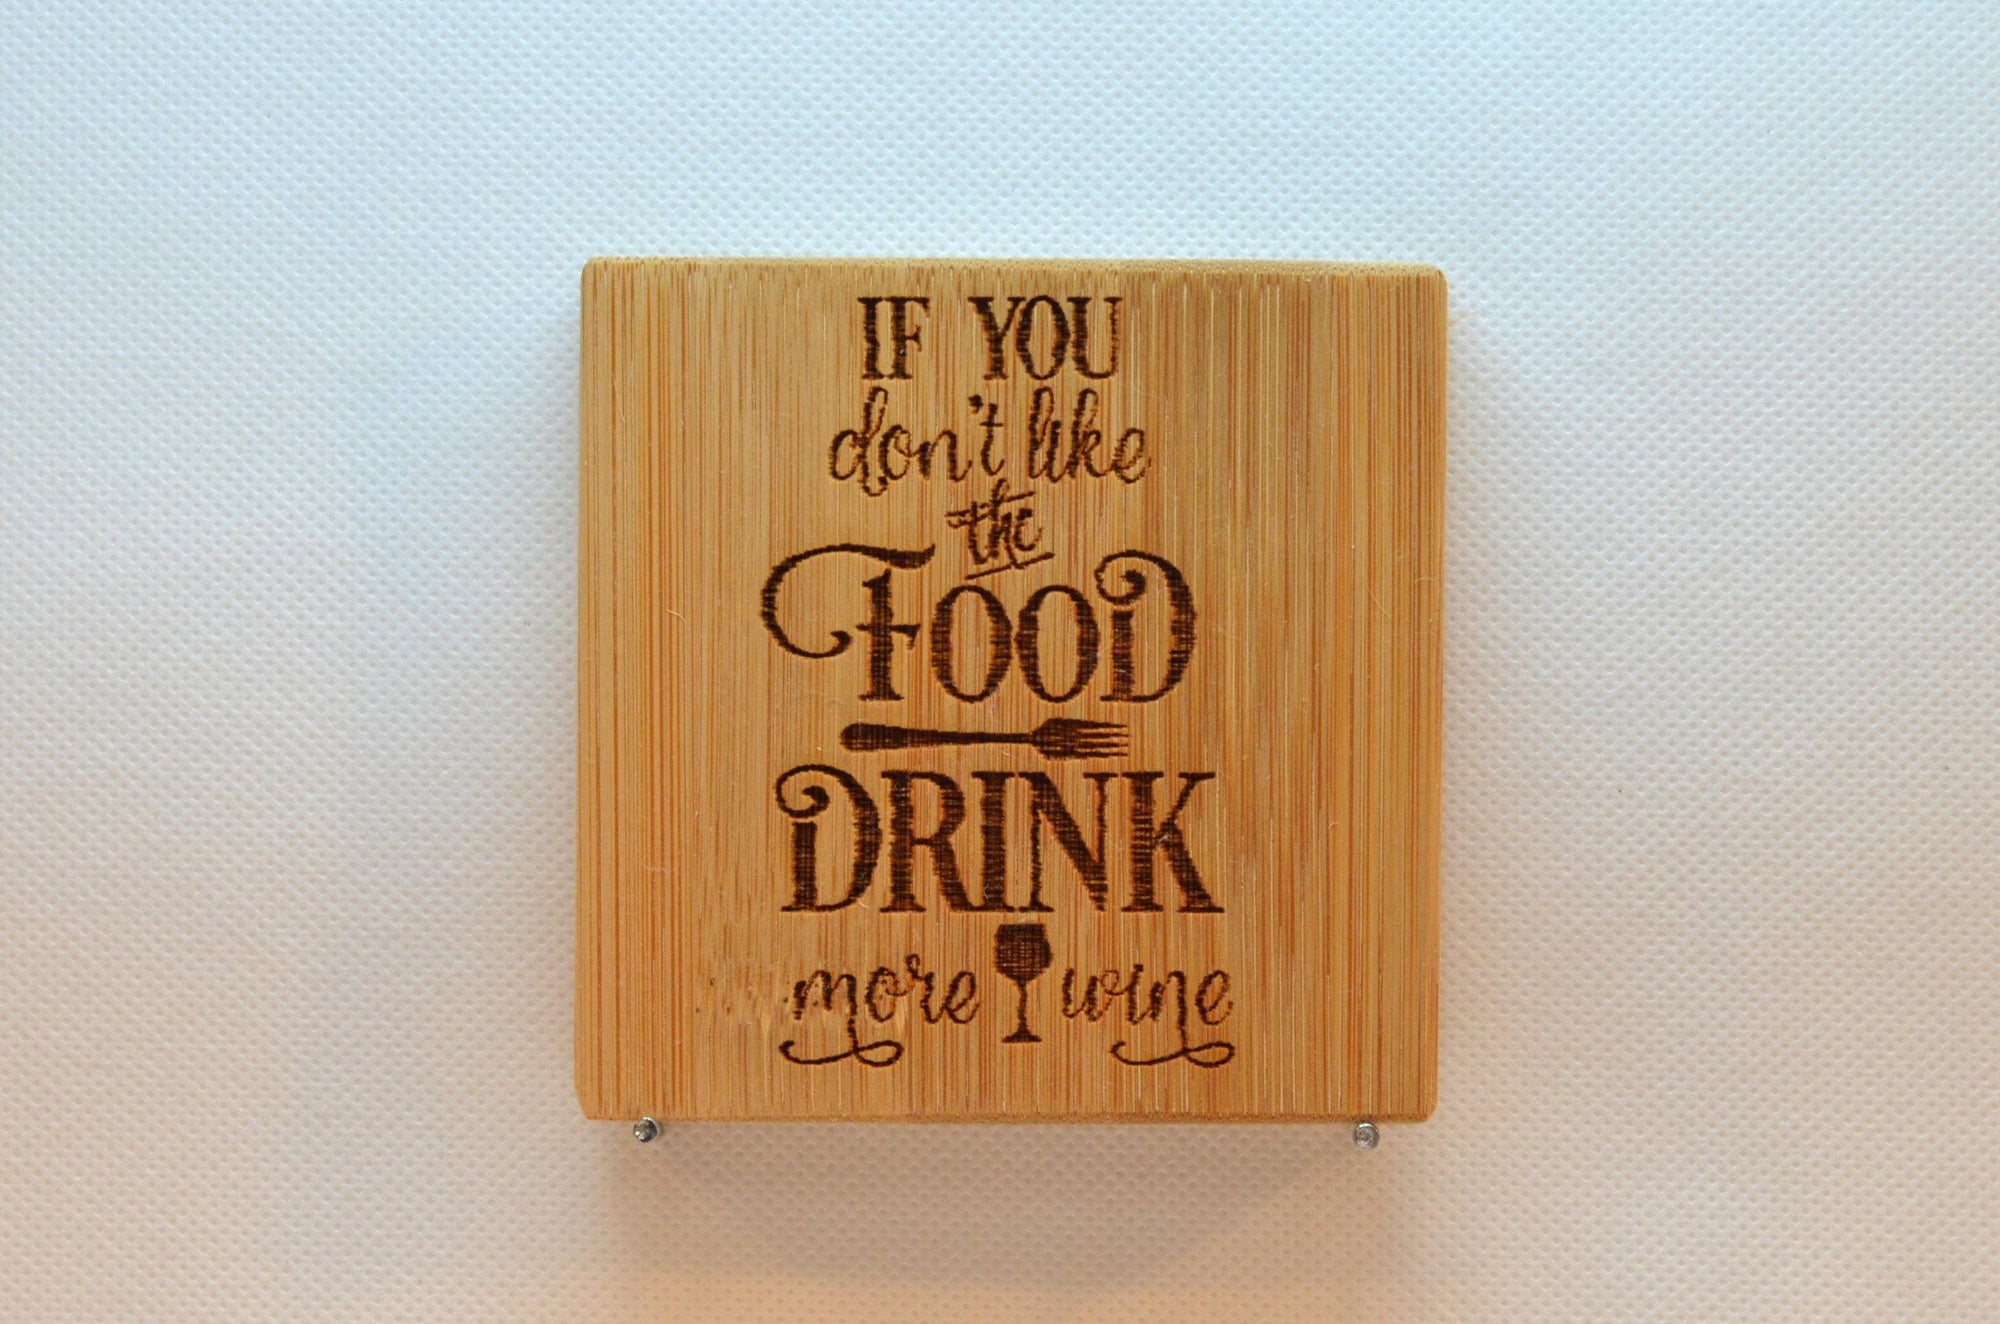 Laser Engraved Bamboo Coaster - If you don't like the food drink more wine